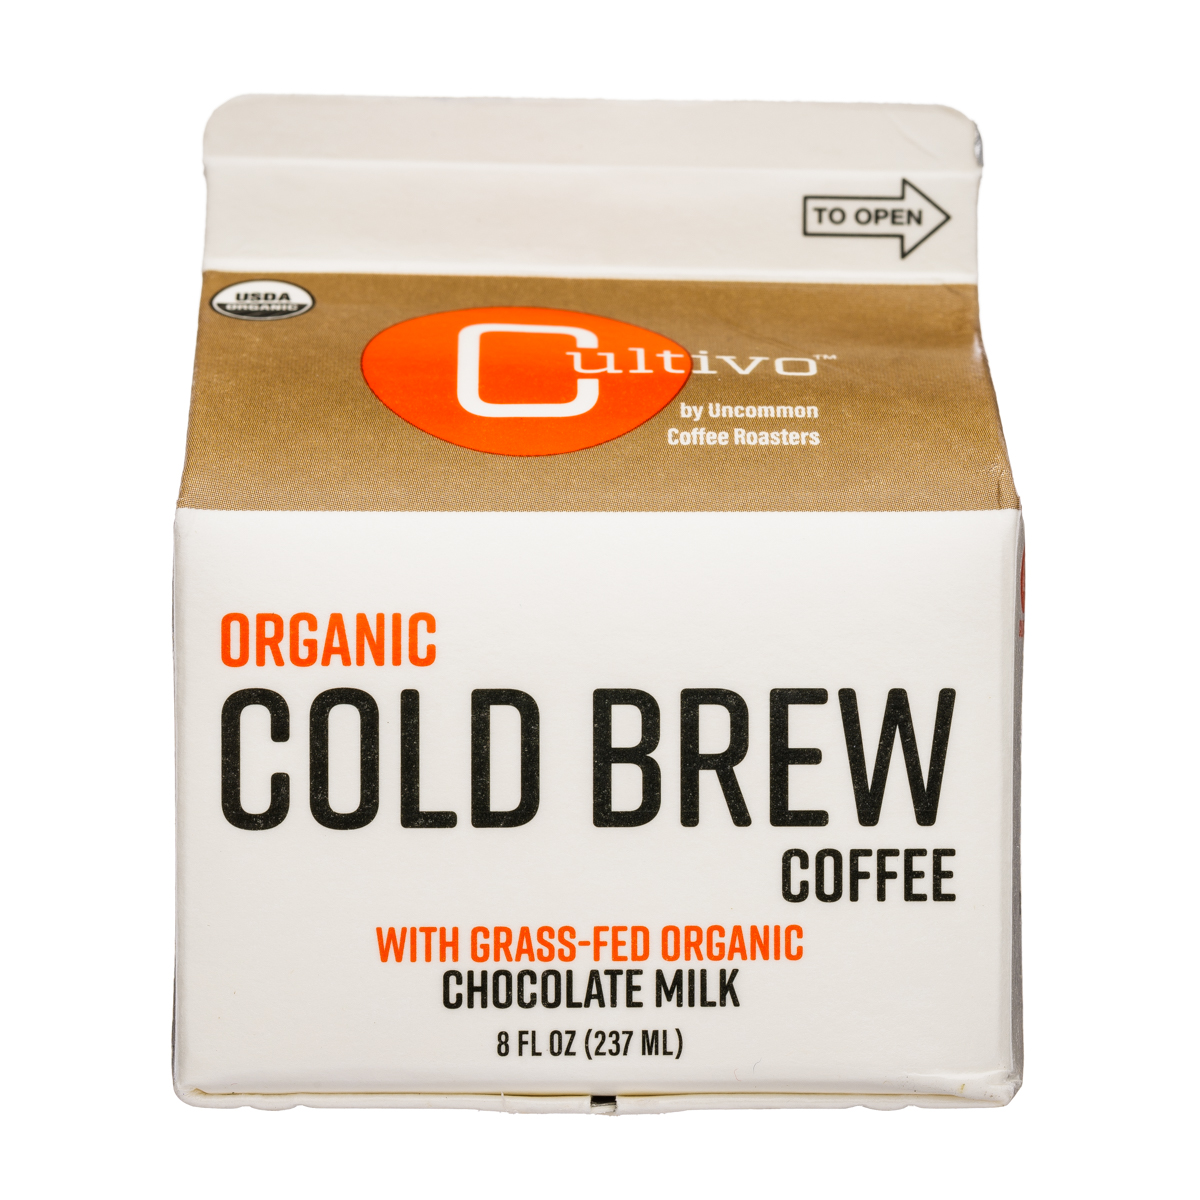 Organic Cold Brew Coffee - Chocolate Milk